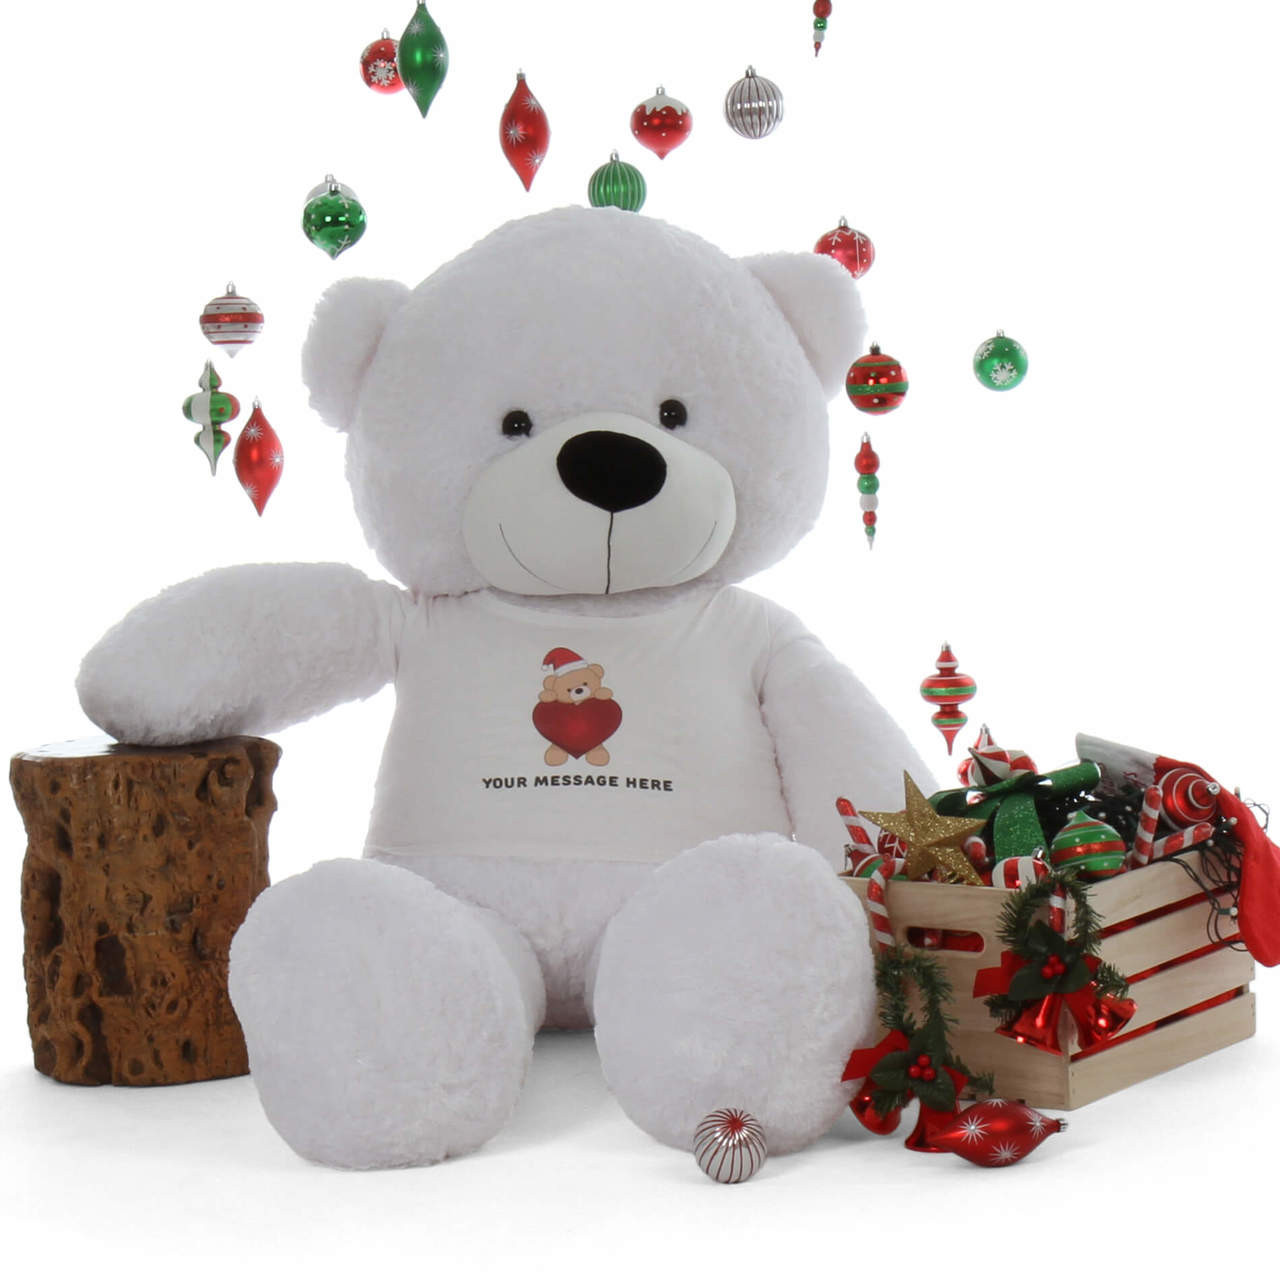 72in adorable Life Size Personalized White Christmas Teddy Bear Coco Cuddles